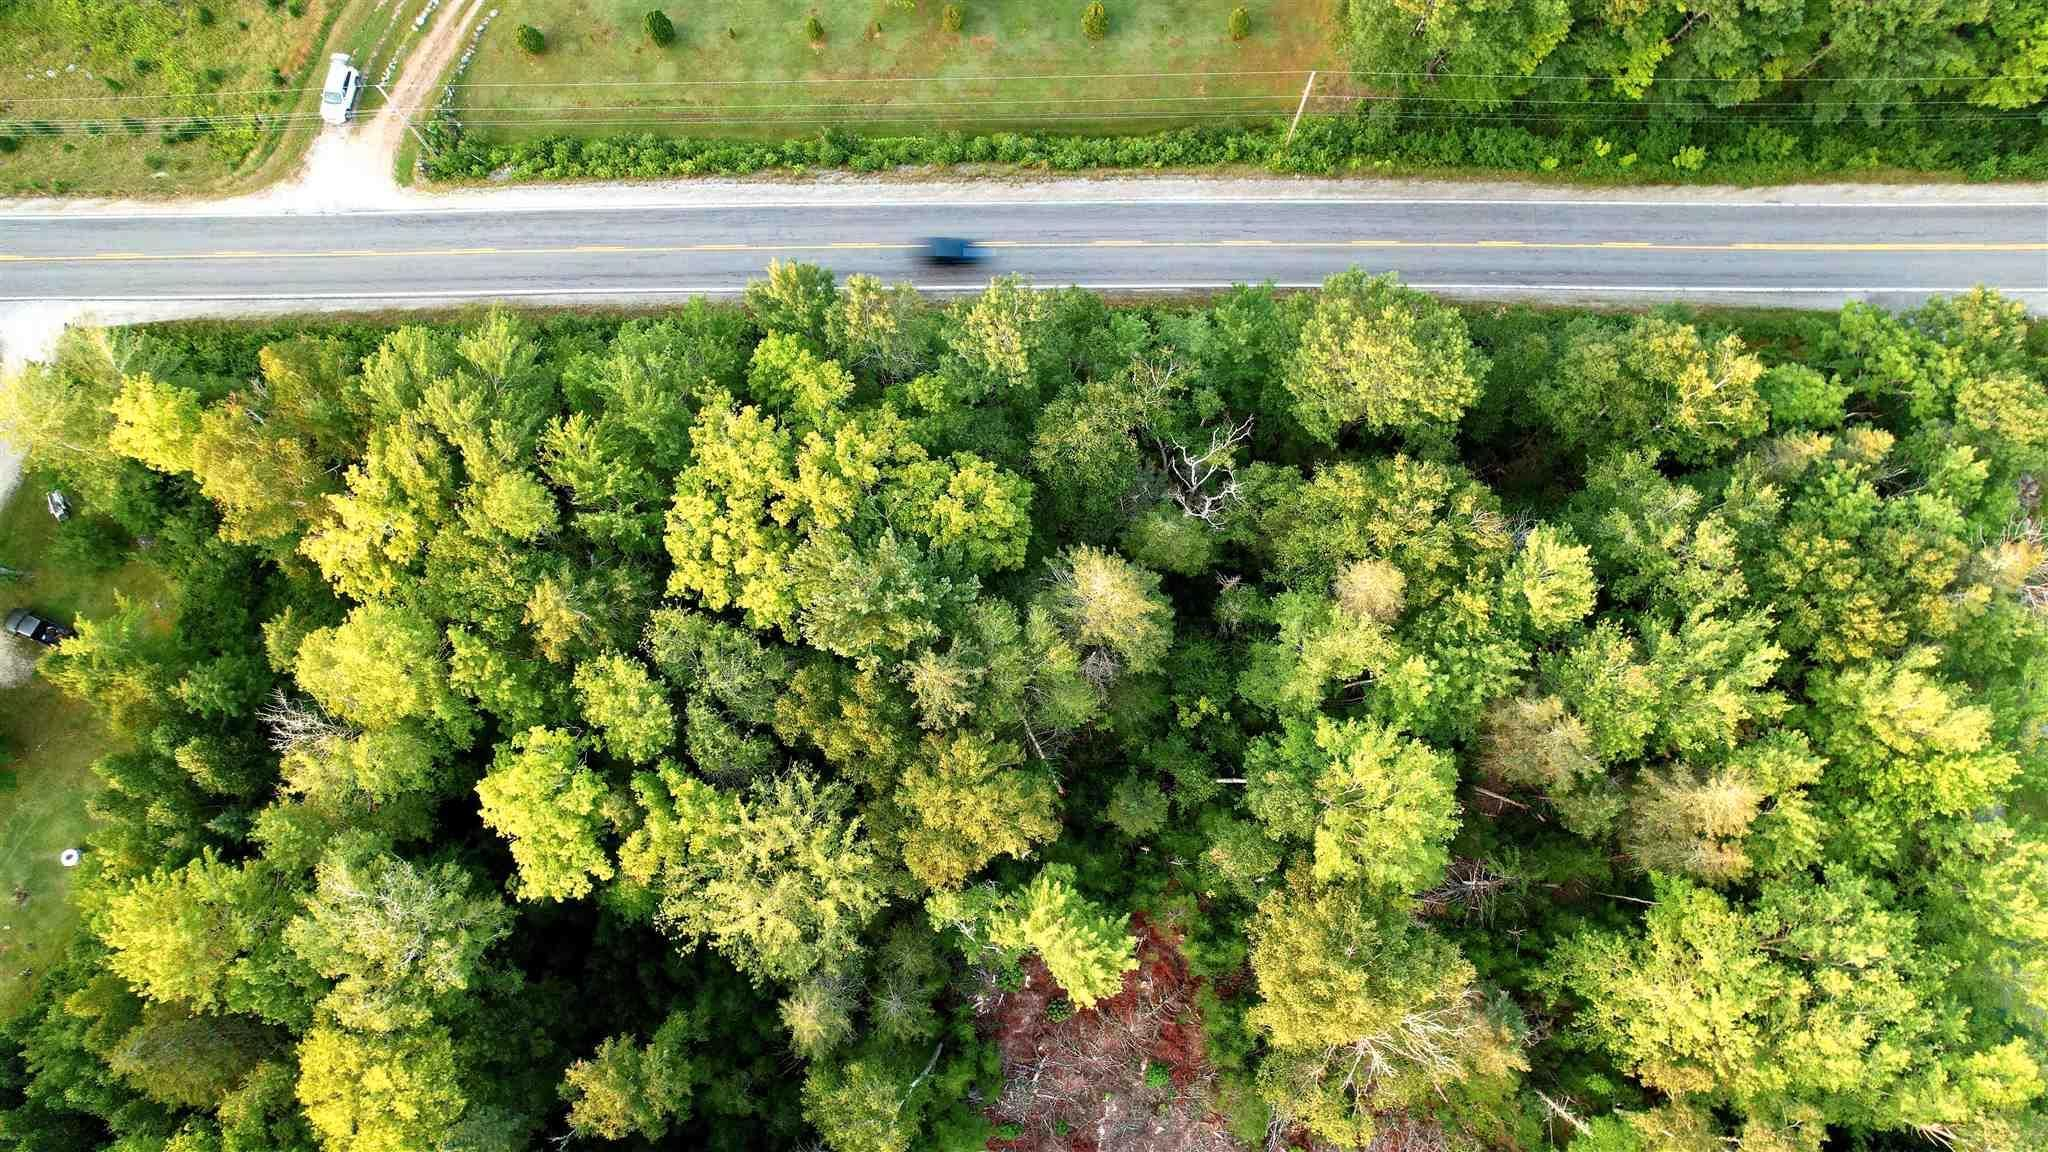 Main Photo: HWY 12 in Aldersville: 405-Lunenburg County Vacant Land for sale (South Shore)  : MLS®# 202121137